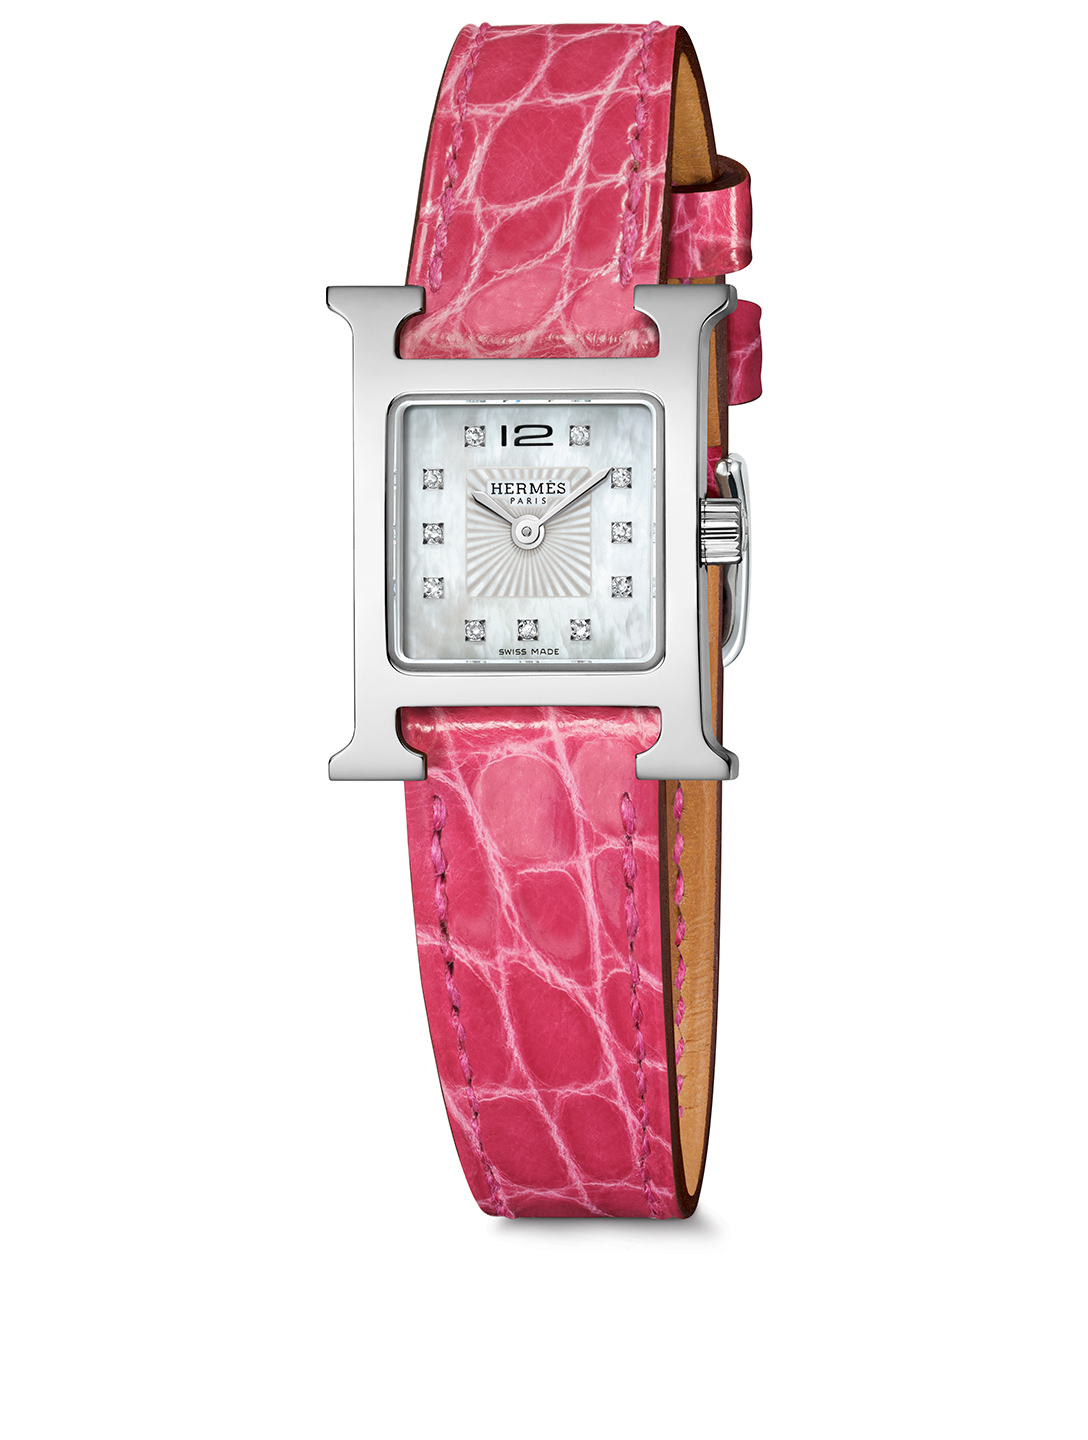 HERMÈS Very Small Heure H Stainless Steel Alligator Strap Watch With Diamonds Women's Pink